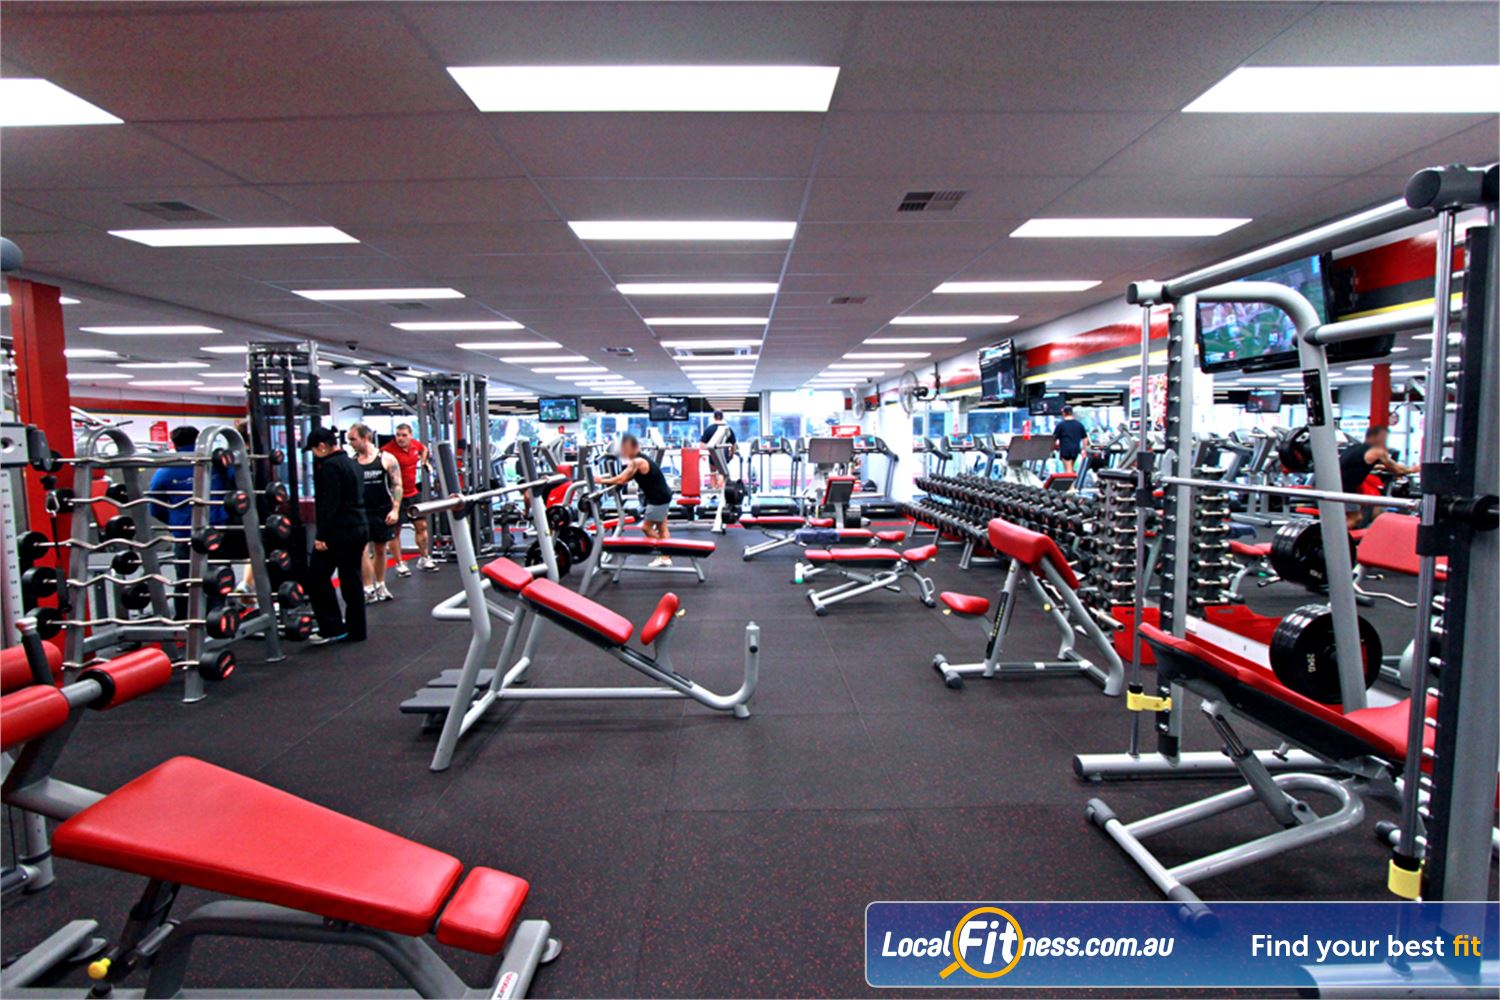 Snap Fitness Jindalee Welcome to Snap Fitness 24 hour gym Jindalee.